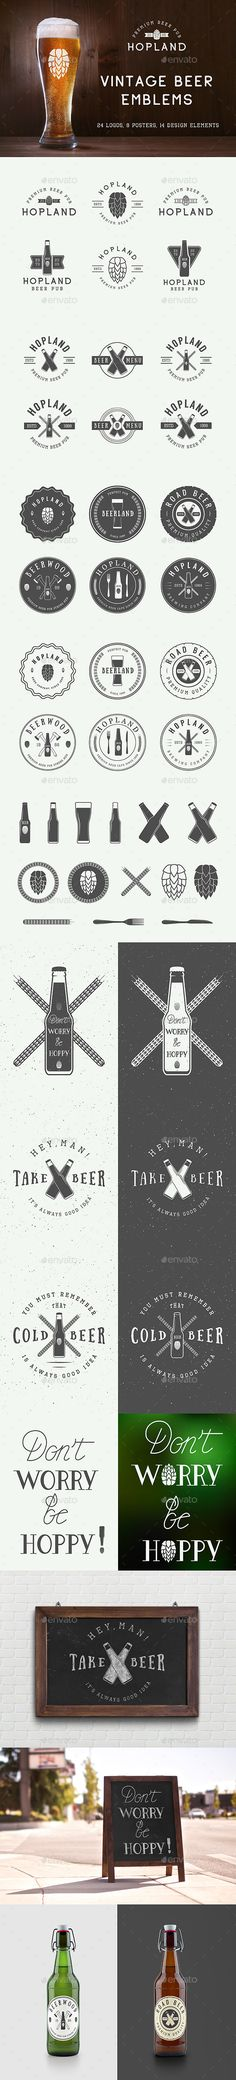 24 Beer Emblems — Photoshop PSD #brewery #crafted • Download ➝ https://graphicriver.net/item/24-beer-emblems/19382302?ref=pxcr